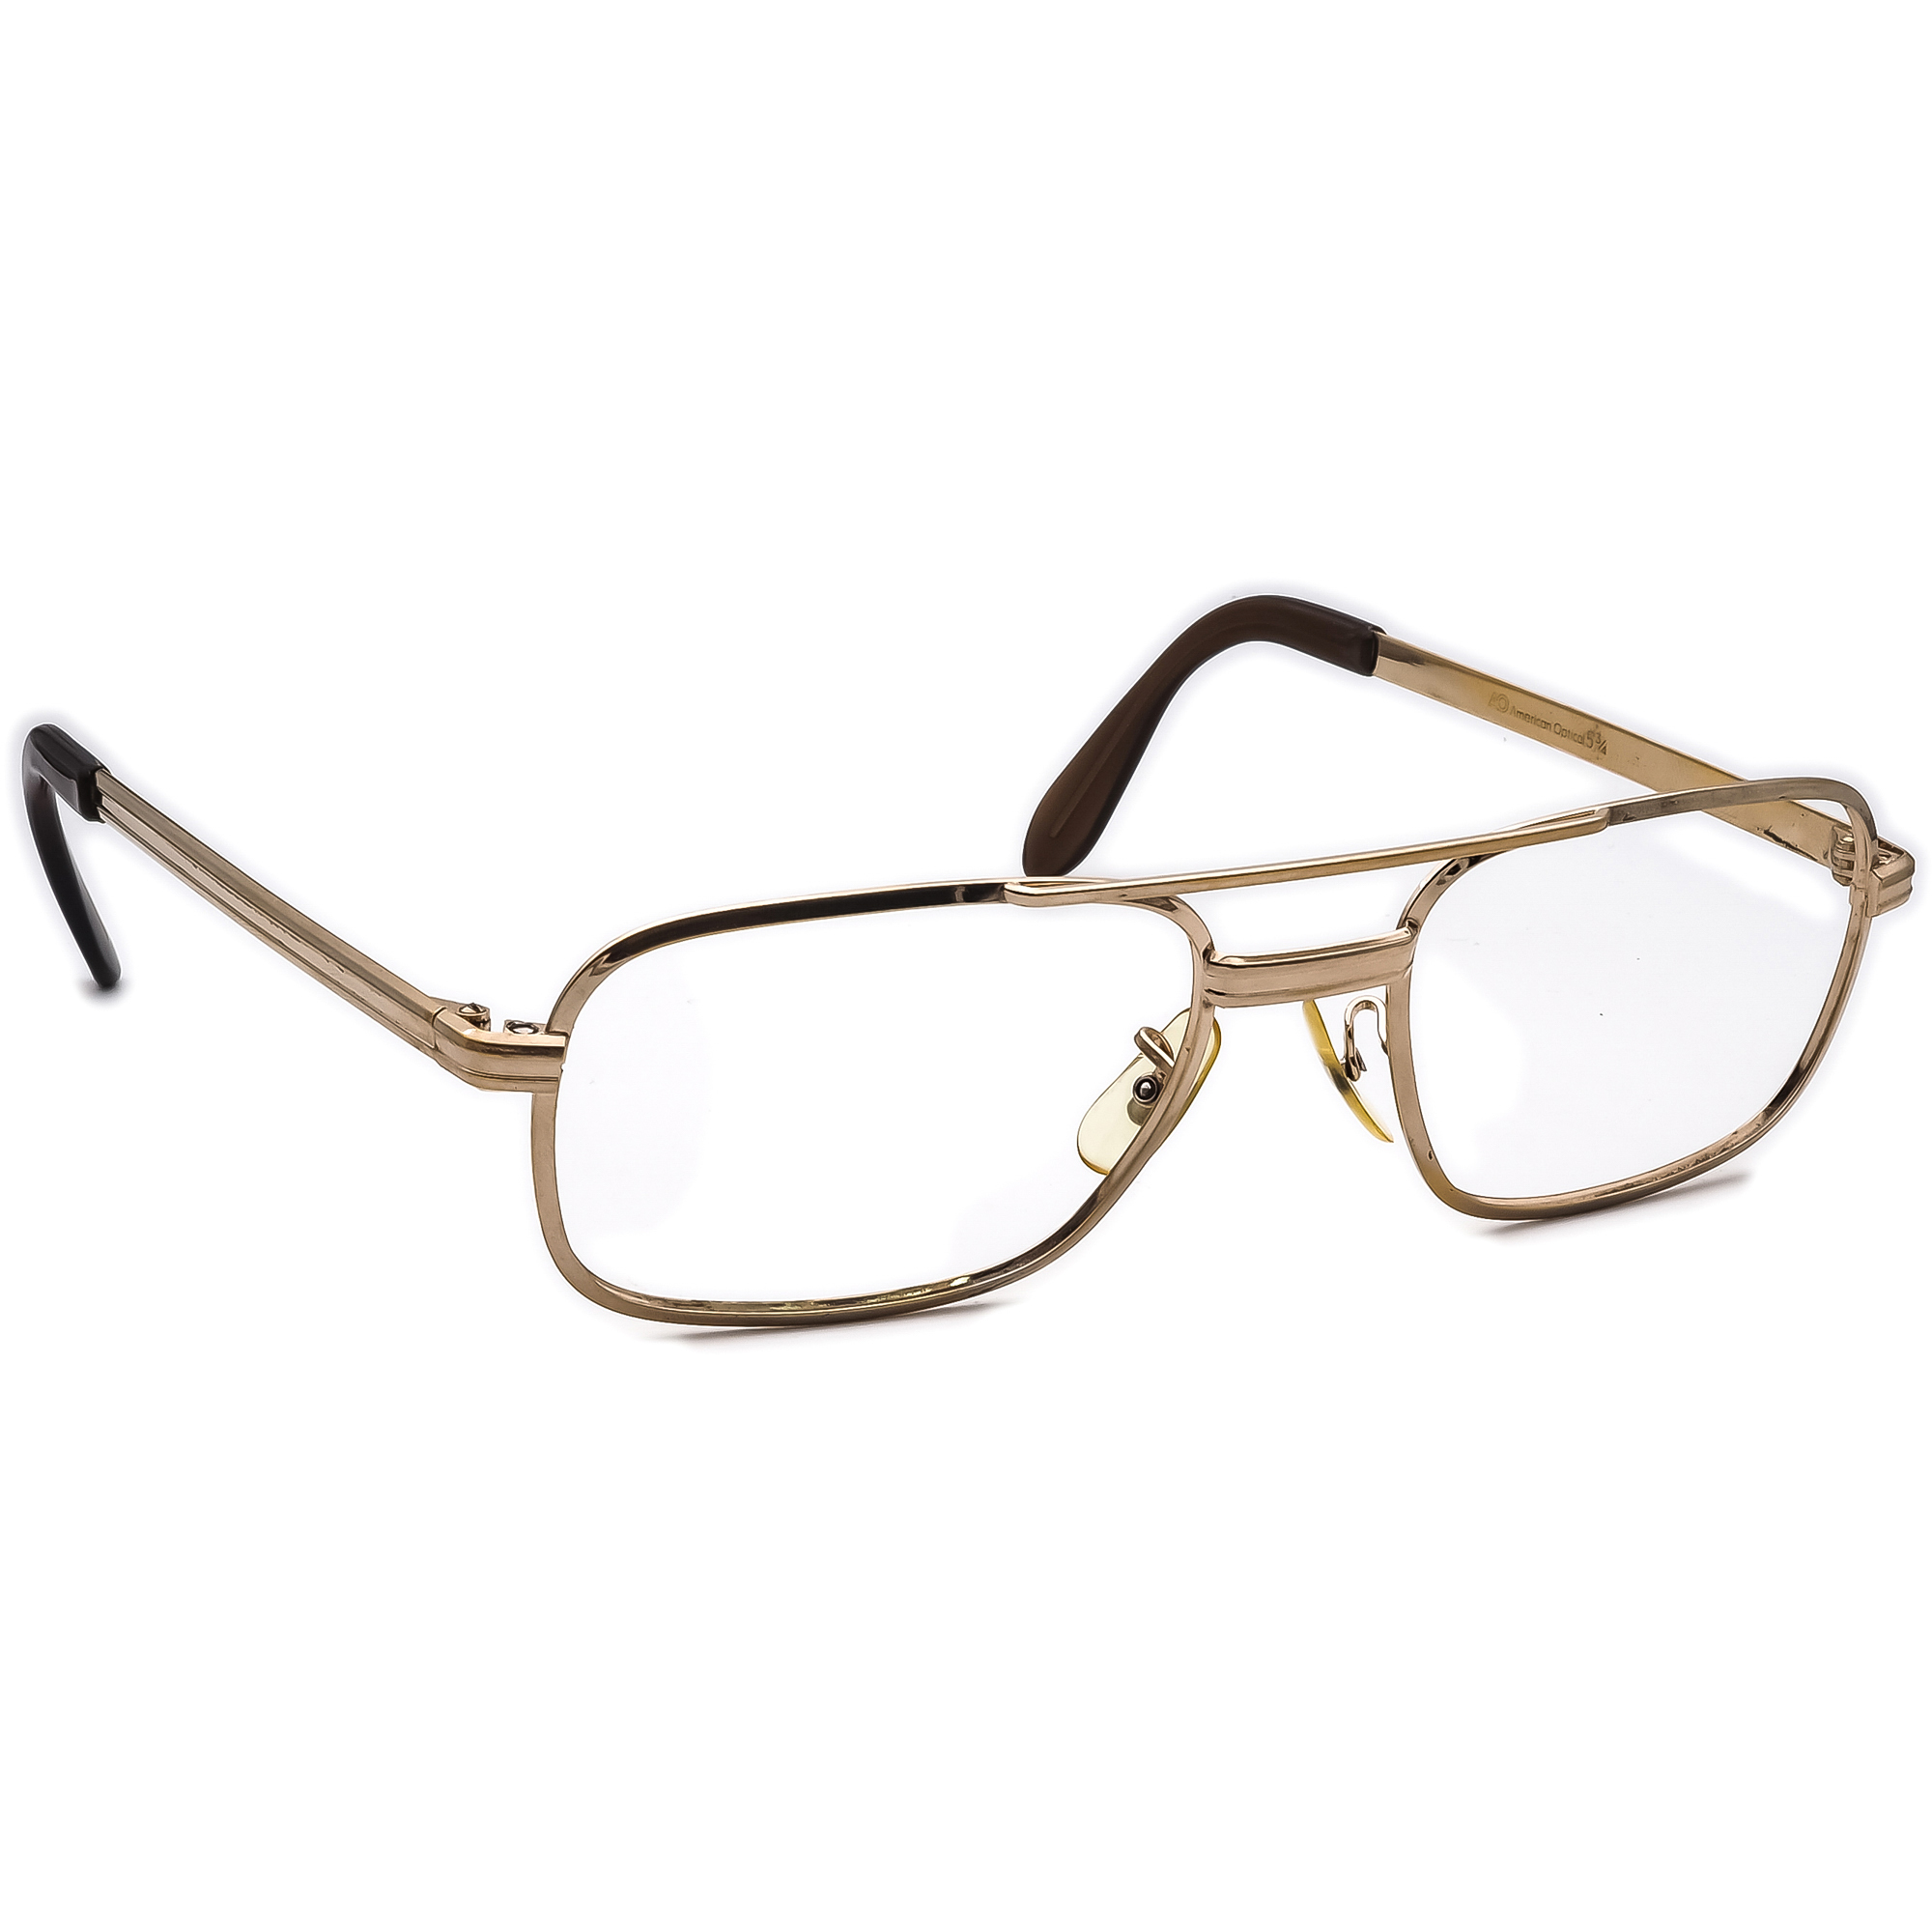 American Optical Vintage AO558 5 3/4 Eyeglasses